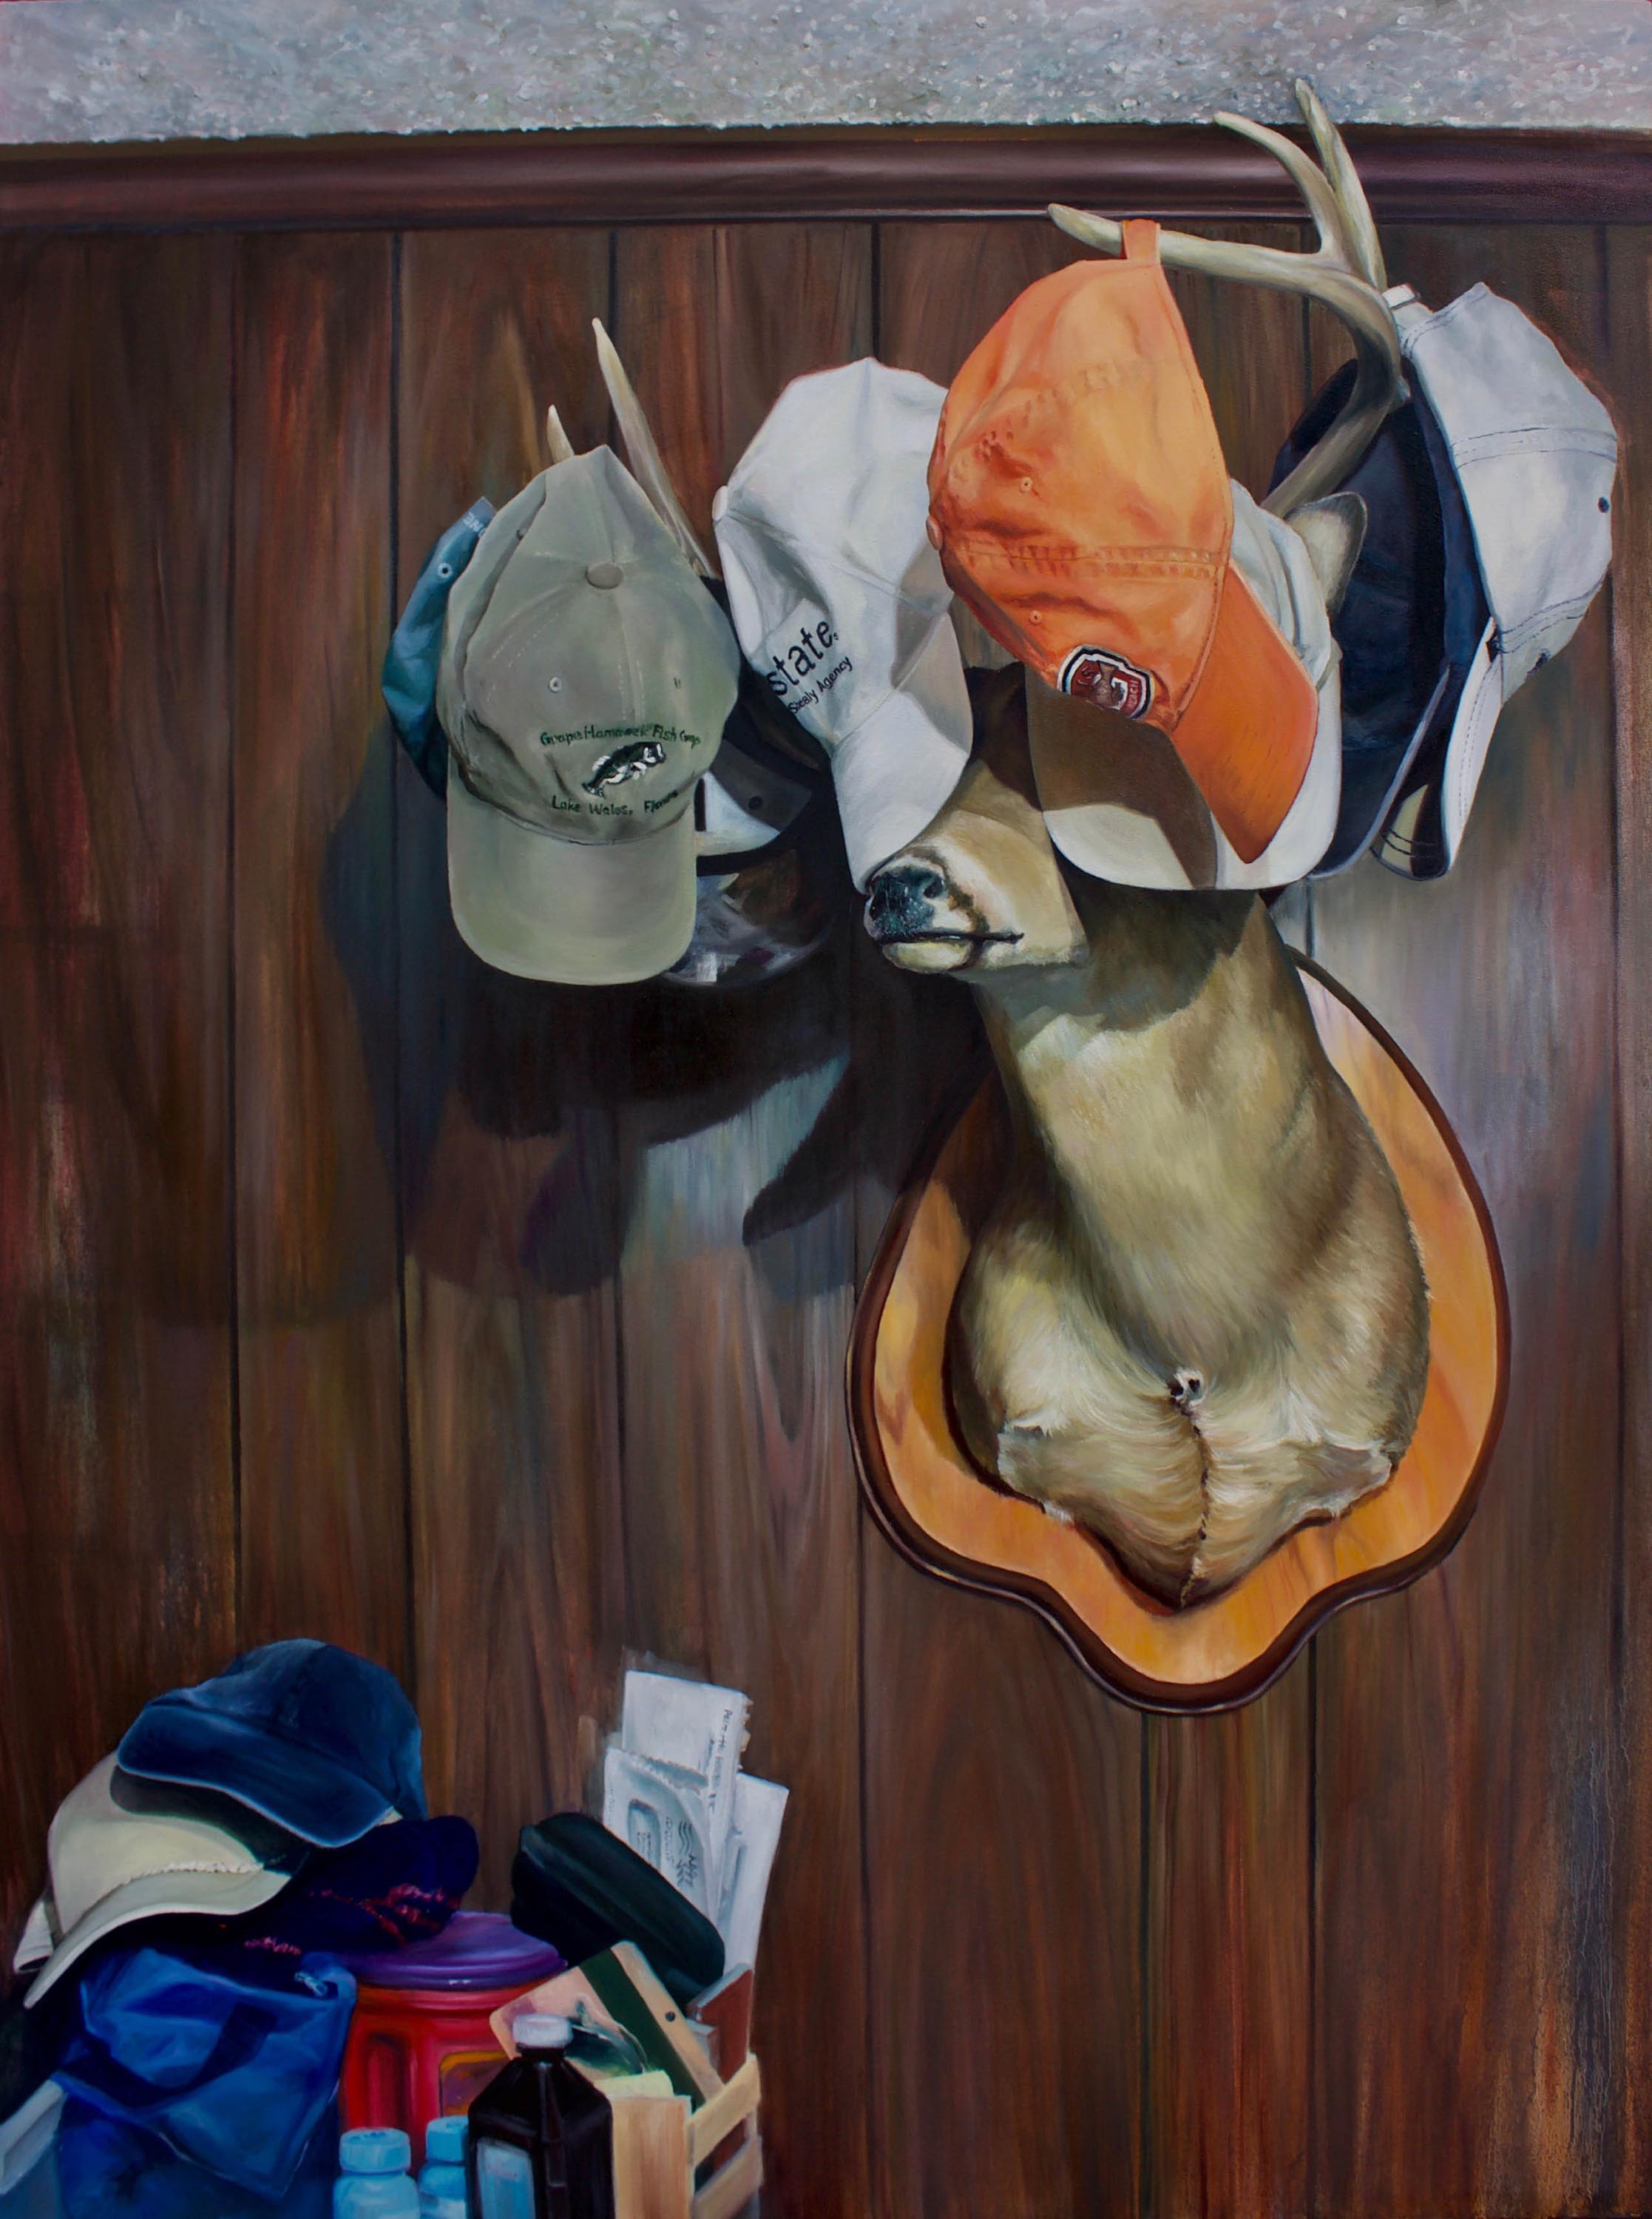 Hanging Your Life On The Wall, 2017, Oil on Canvas, 36